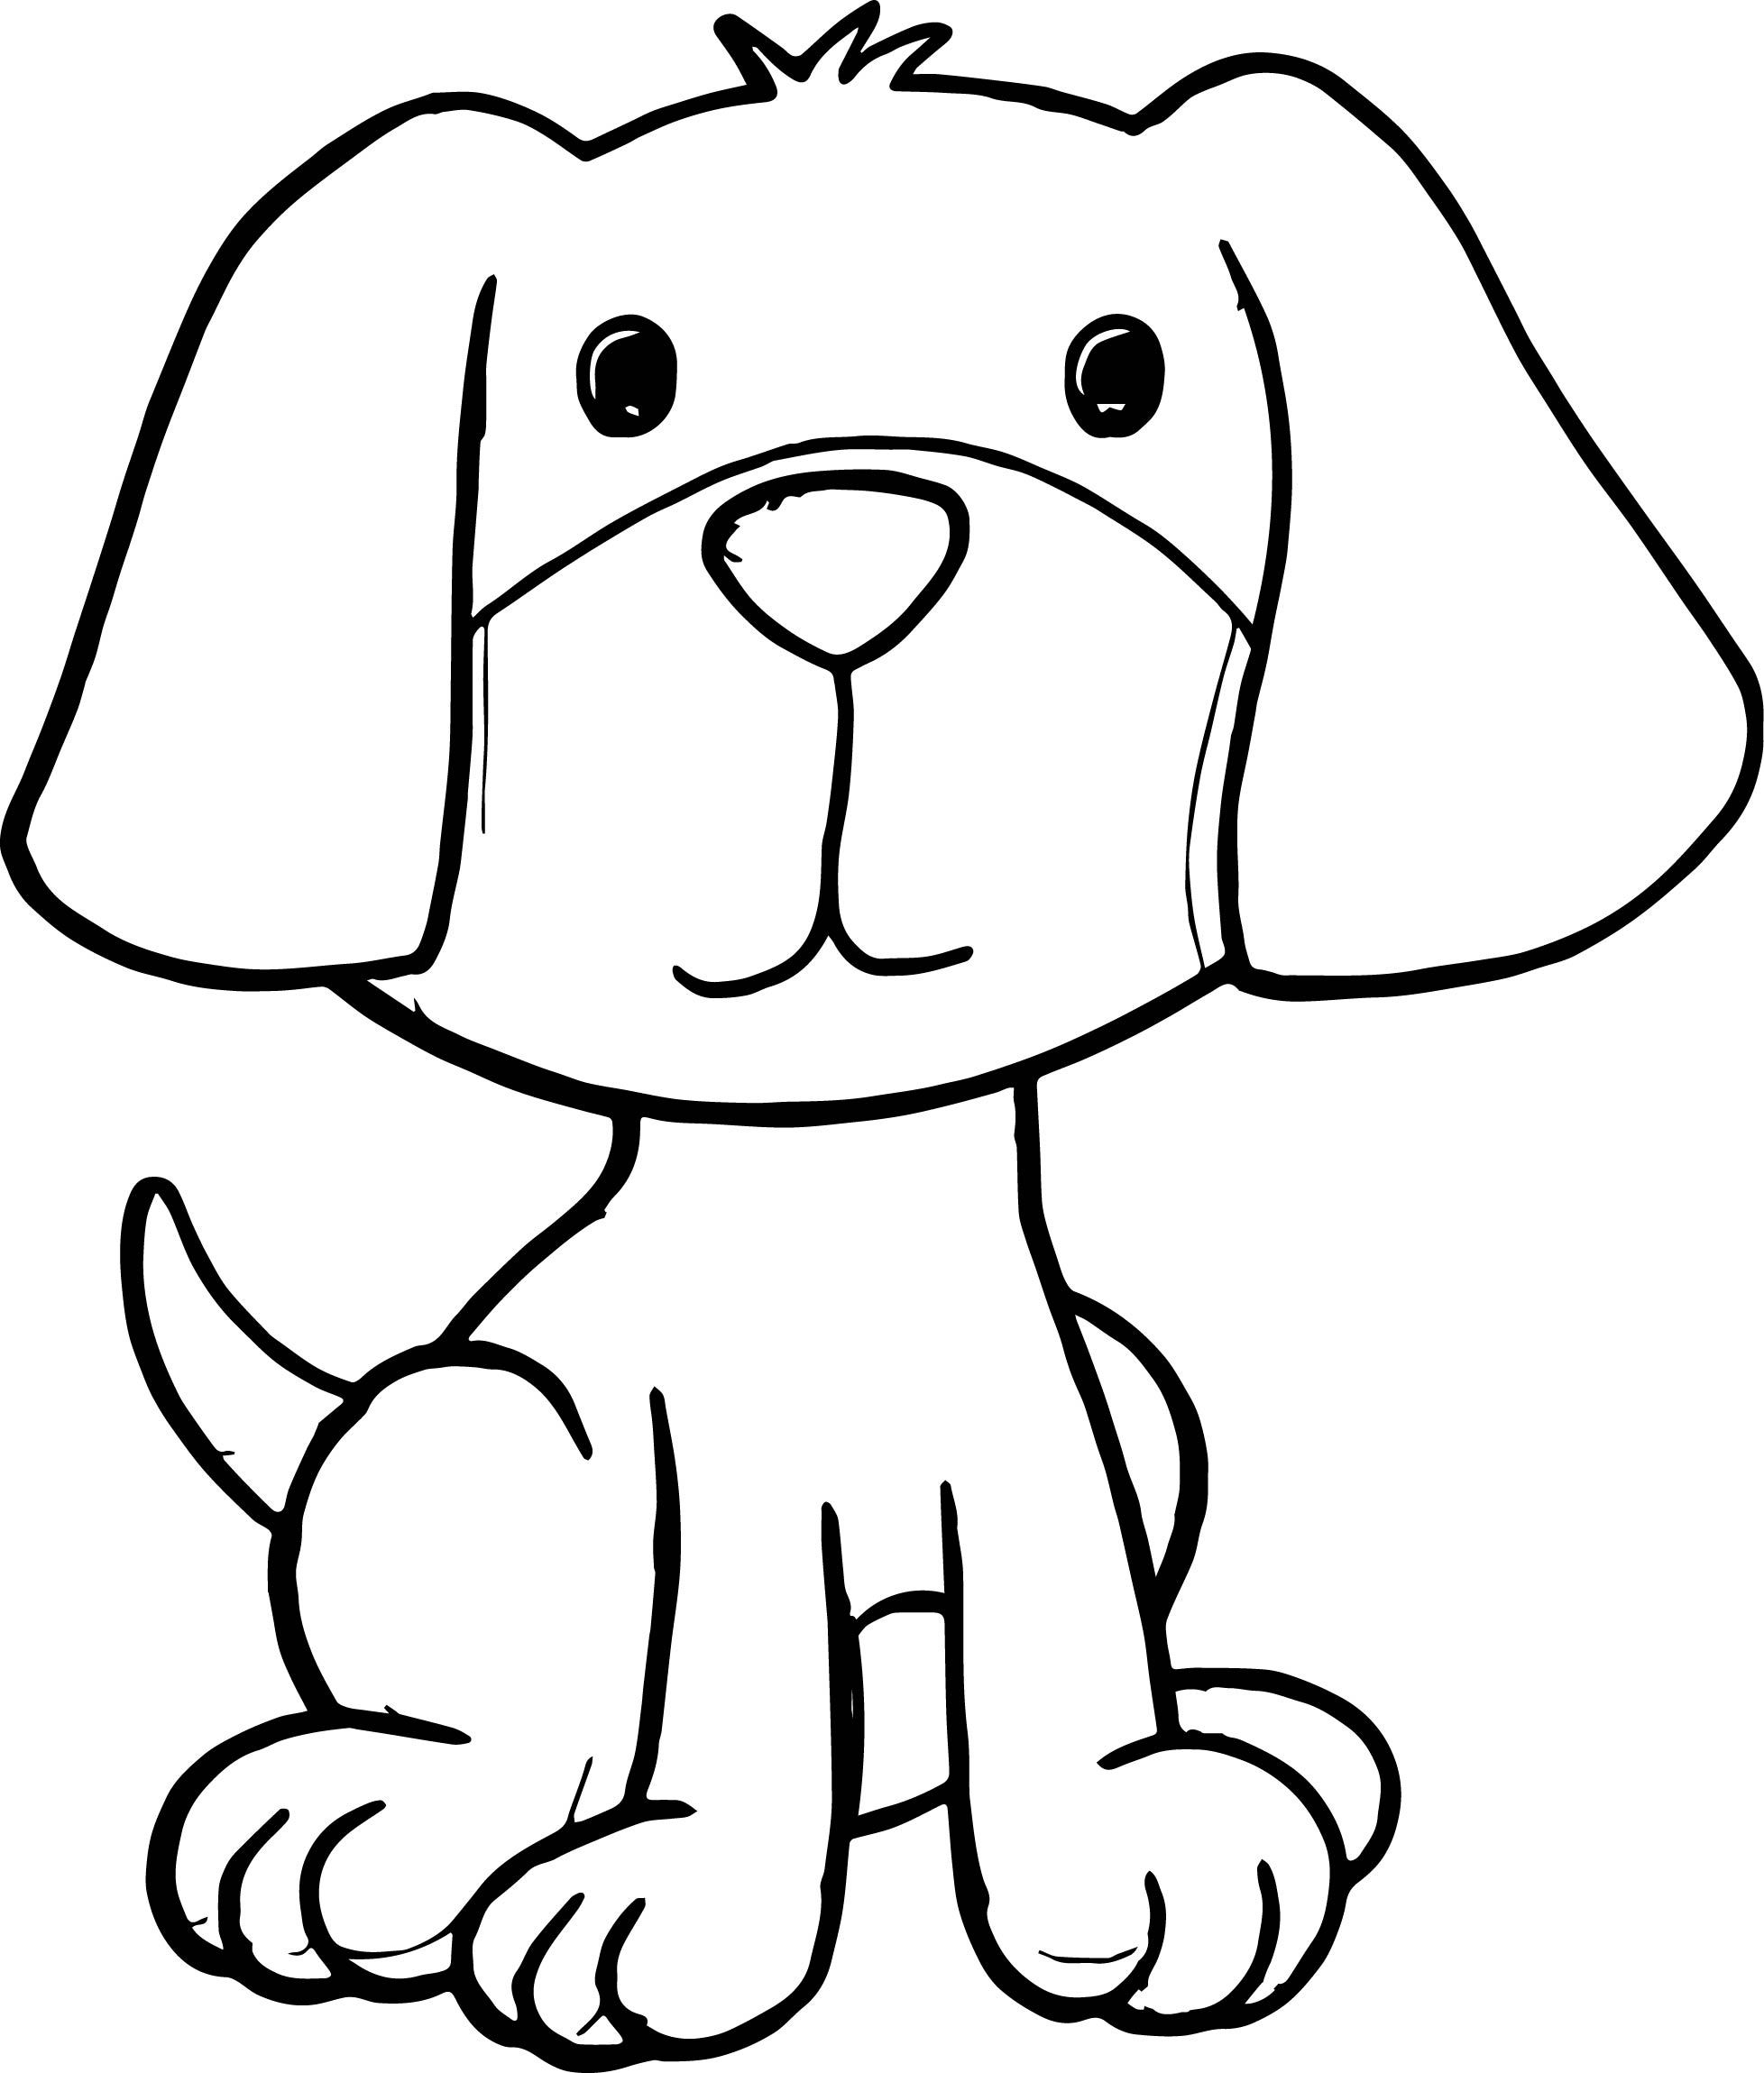 Cute Cartoon Dog Coloring Pages